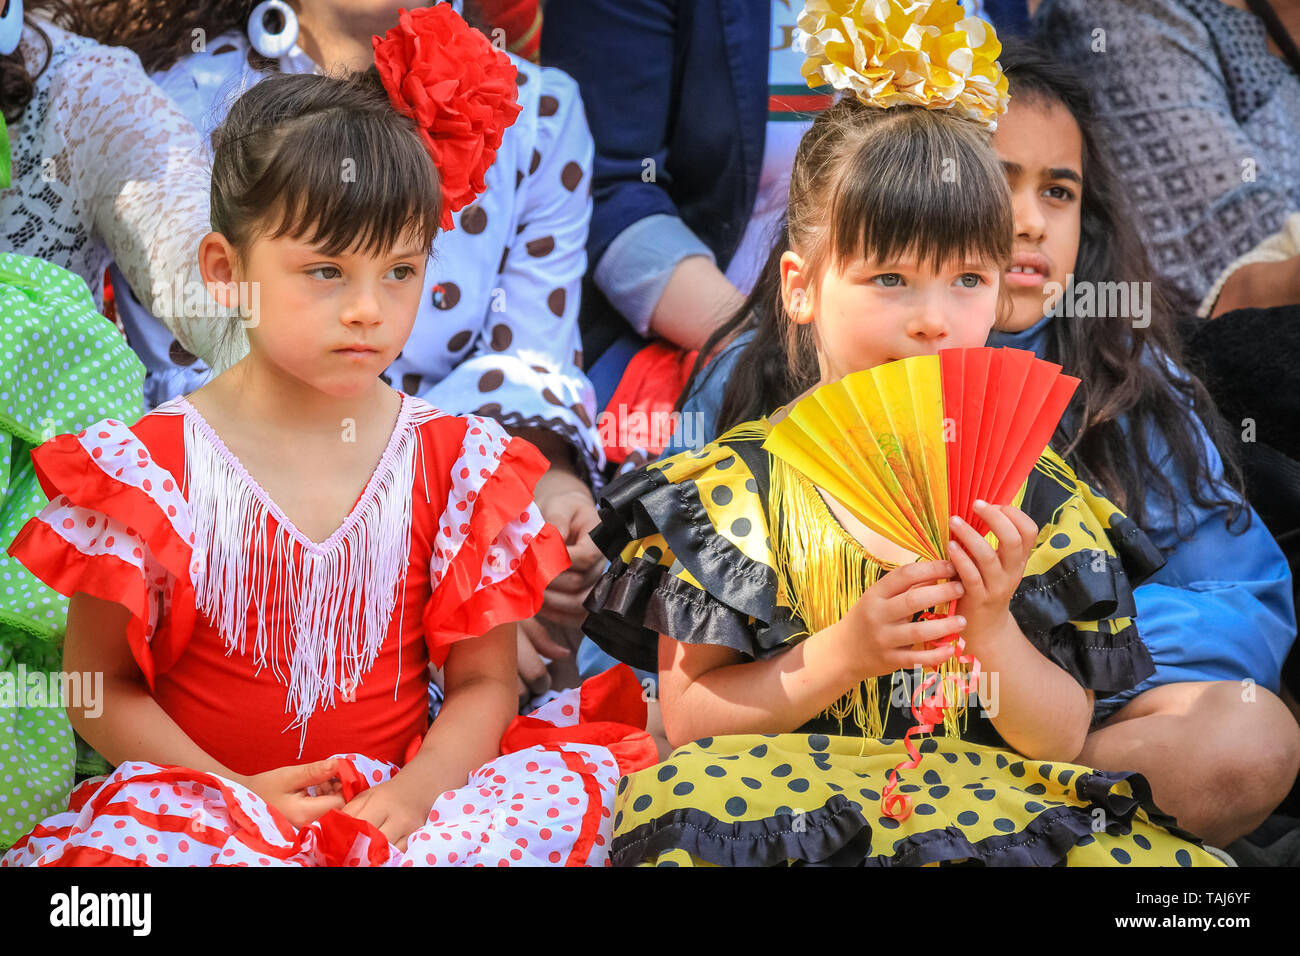 South Bank, London, UK - 25th May 2019. Children watch the performances closely. The Feria de Londres is a free festival on London's South Bank presenting Spanish culture, dance, music, wine and food from May 24-26. Credit: Imageplotter/Alamy Live News - Stock Image